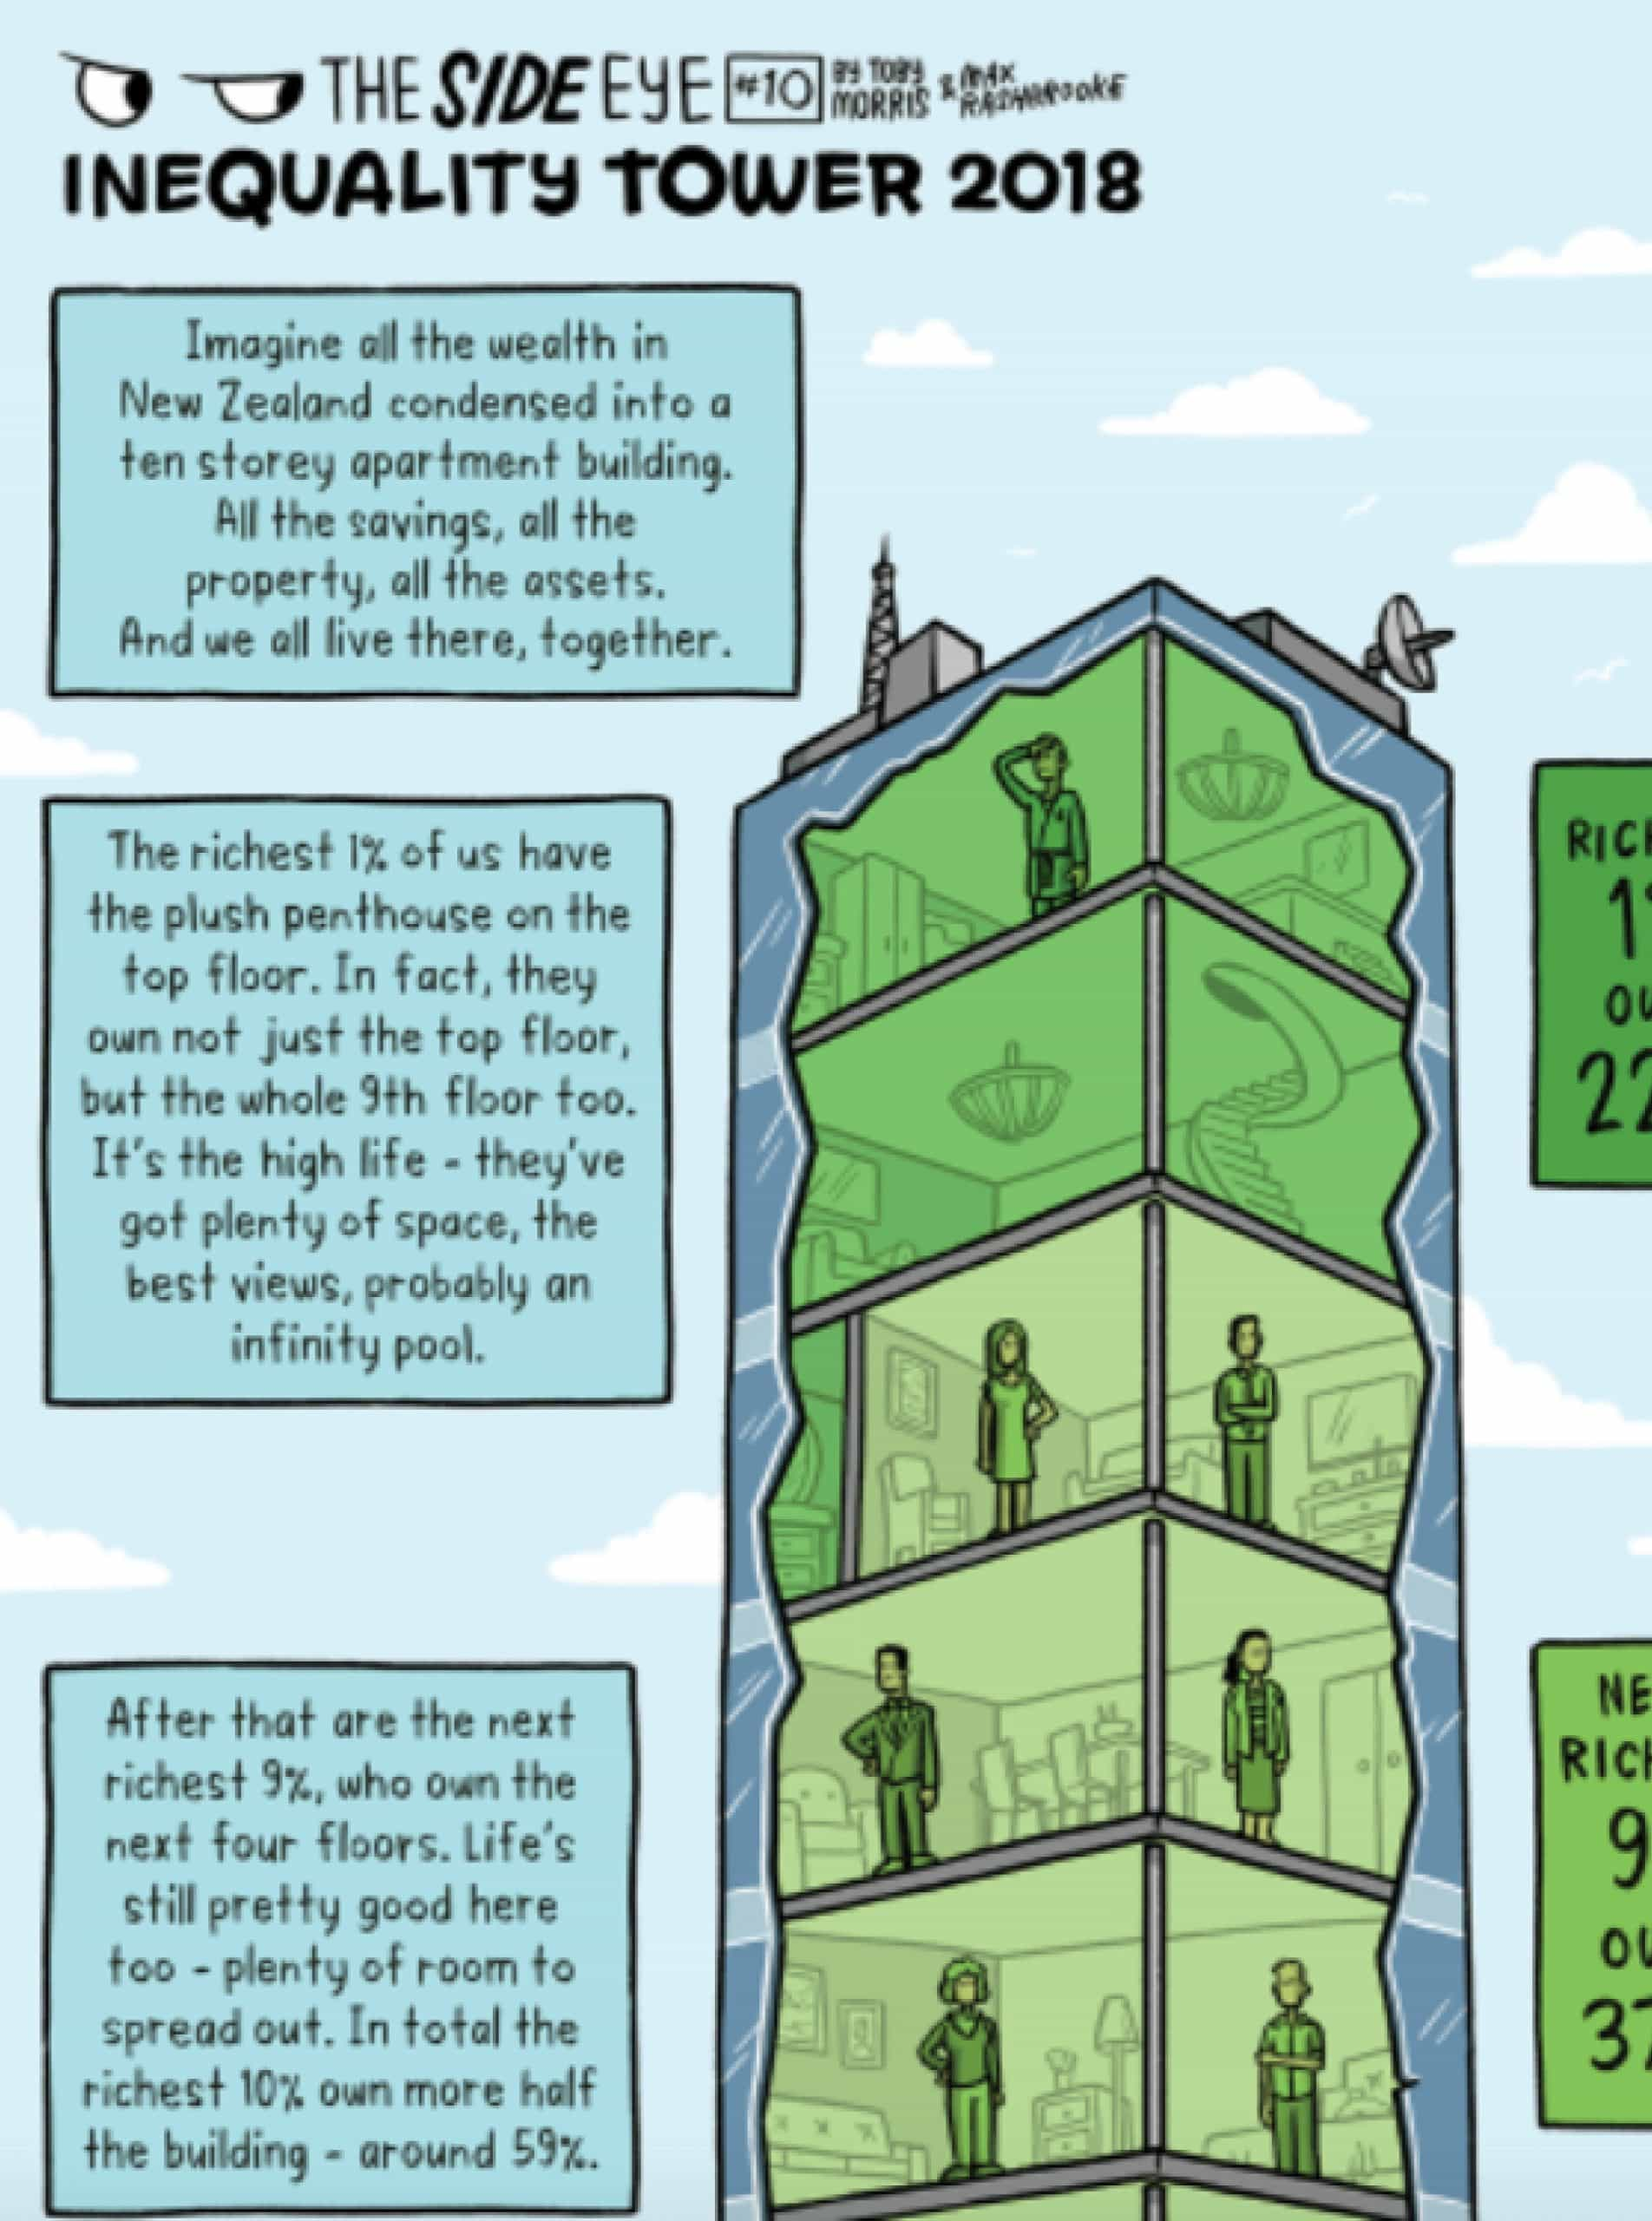 Inequality Tower